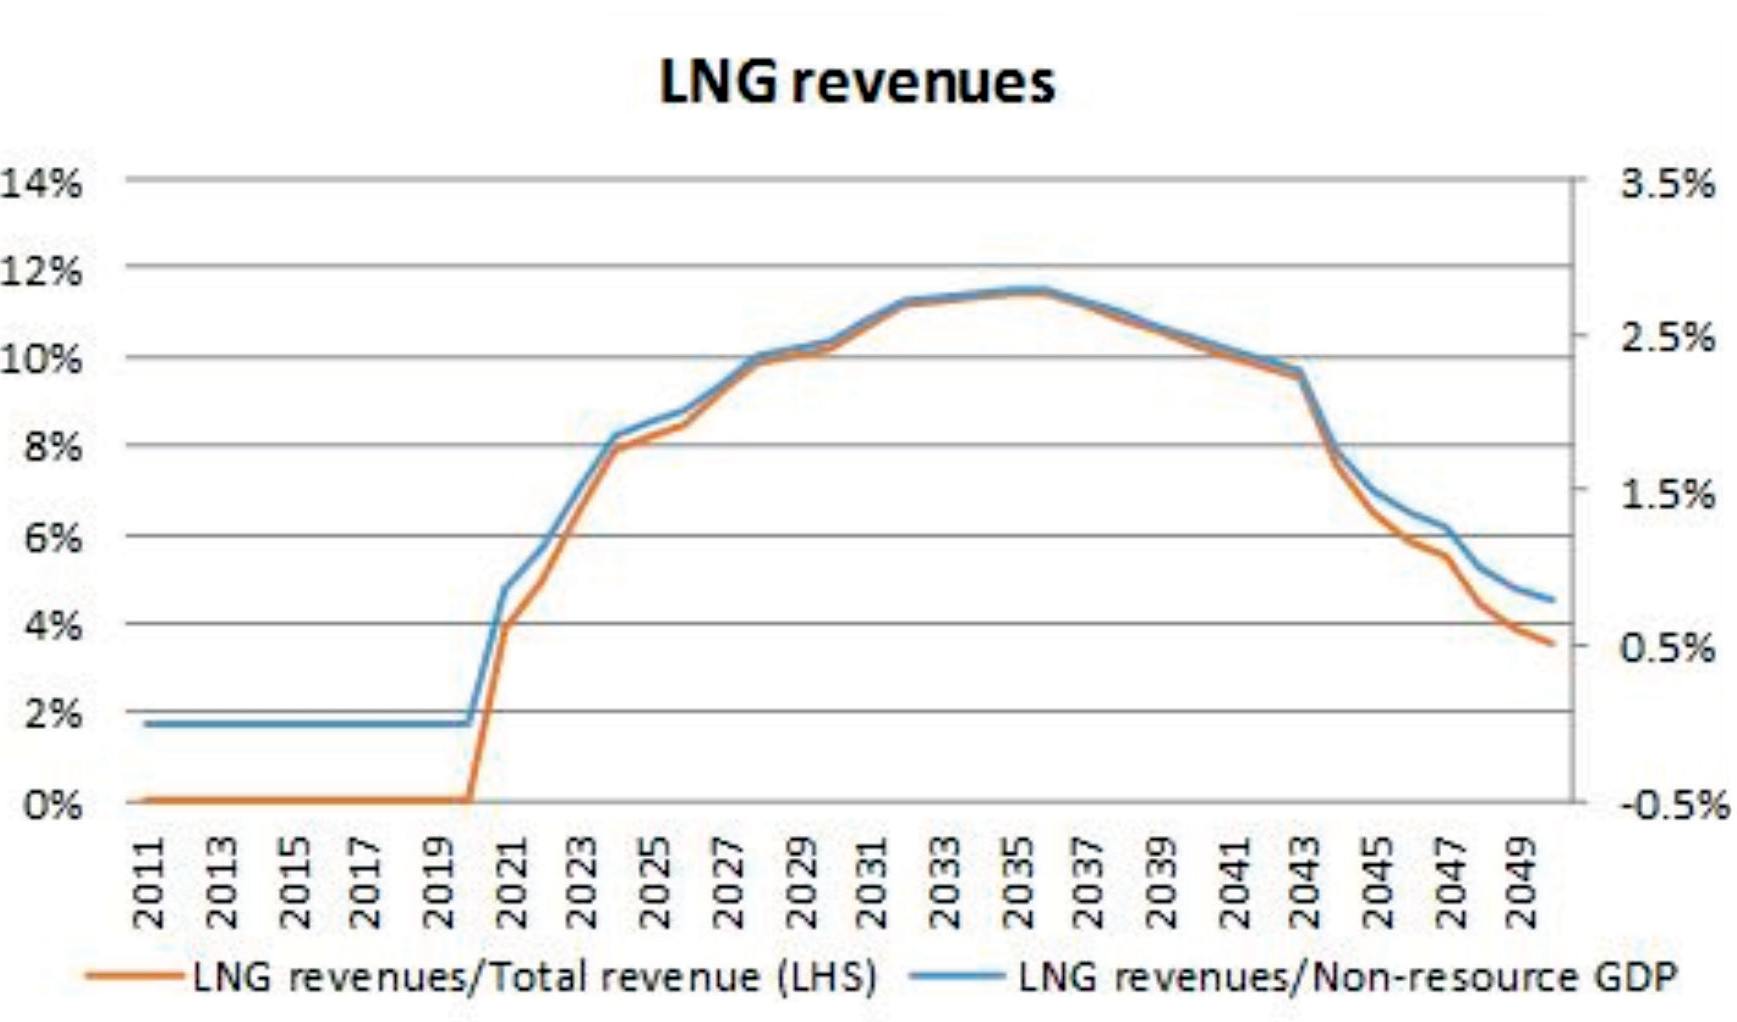 How Valuable Are Lebanon's Oil and Gas Revenues?